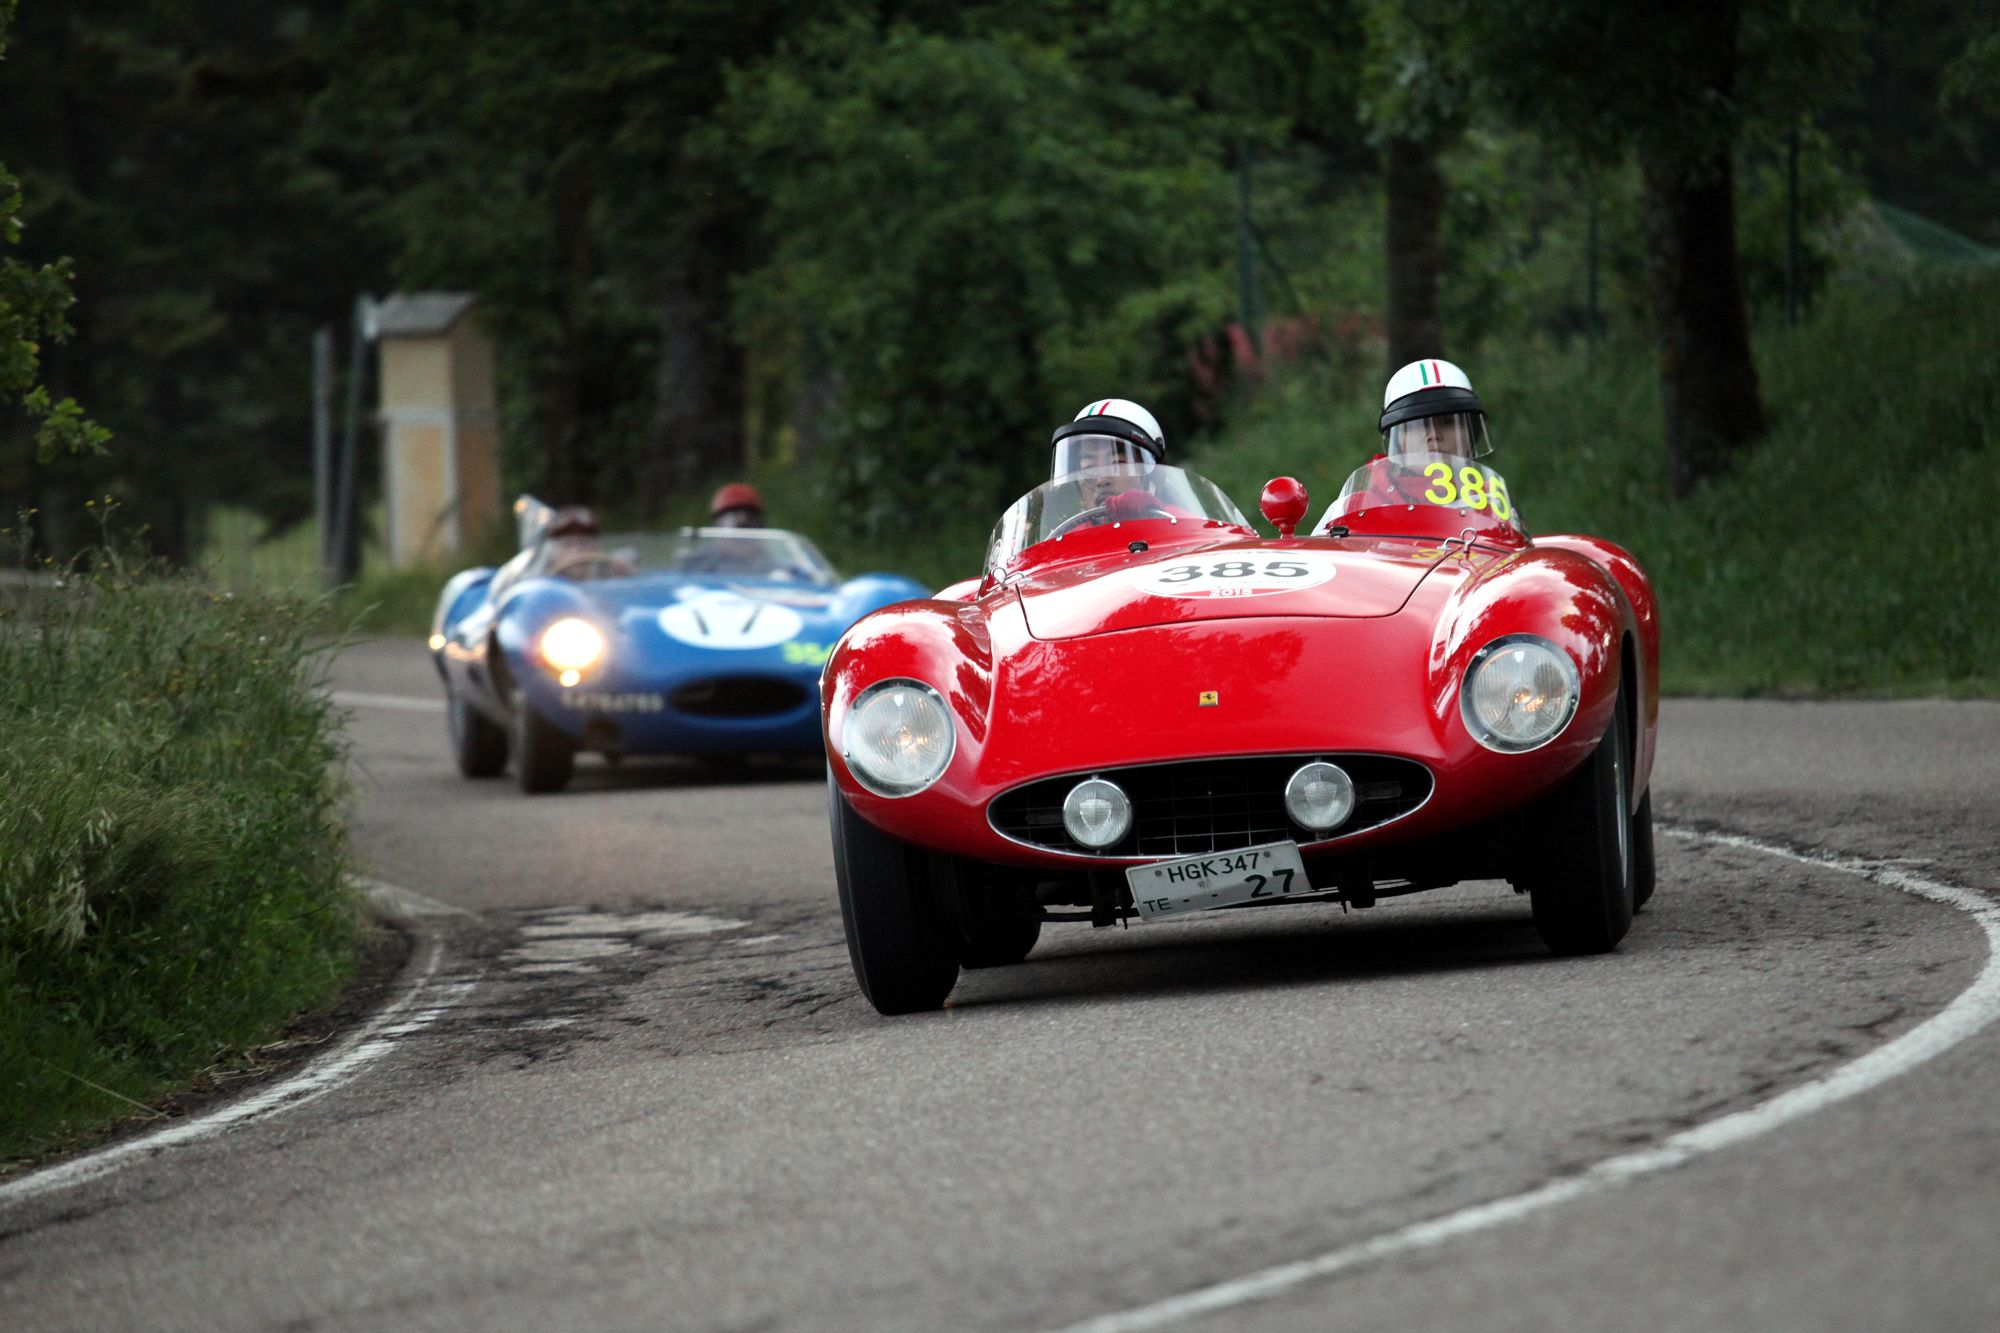 Top 10 Mille Miglia 2015 Highlights - GTspirit